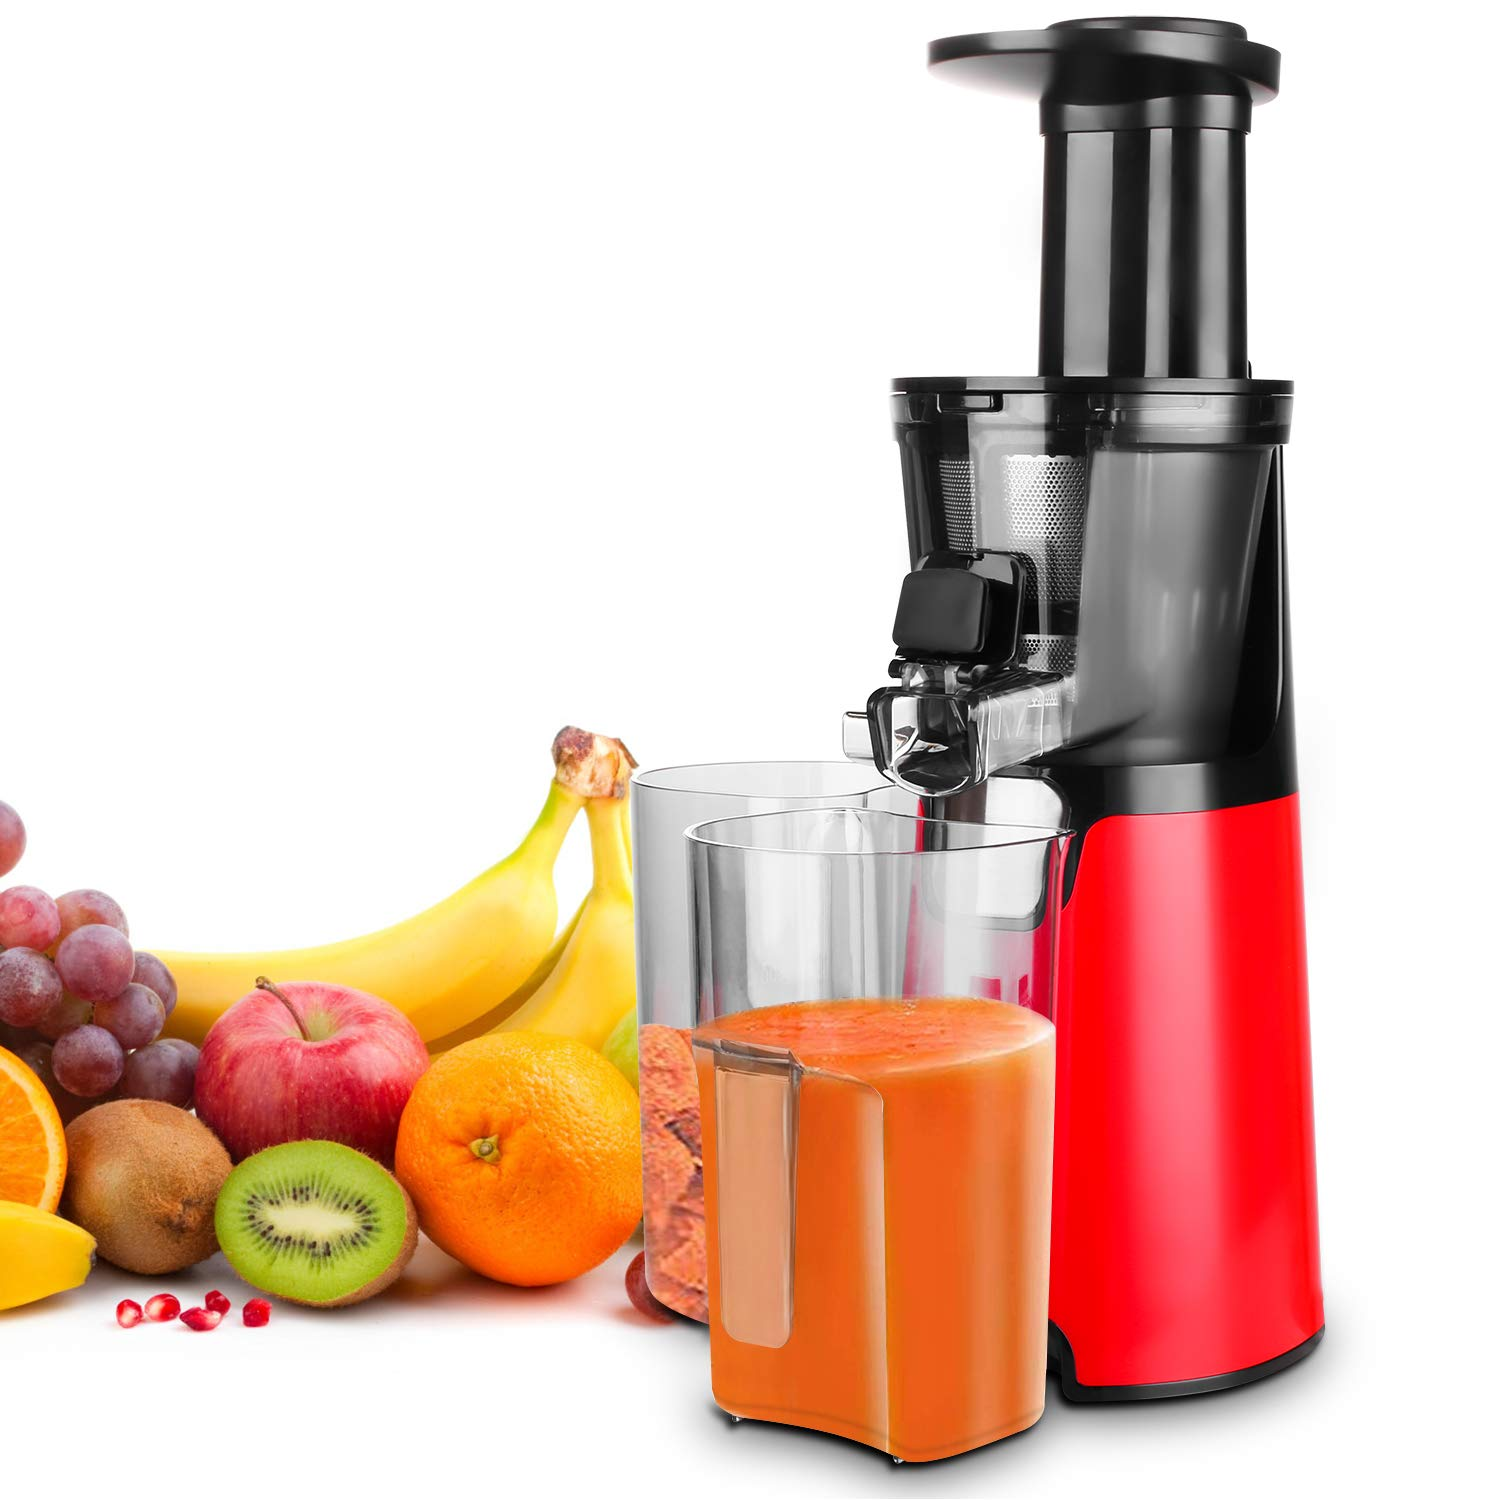 HomevoltsSlow Juicer Red Compact Masticating Juicer with Cold Press and Quite Motor for Fruit by Homevolts